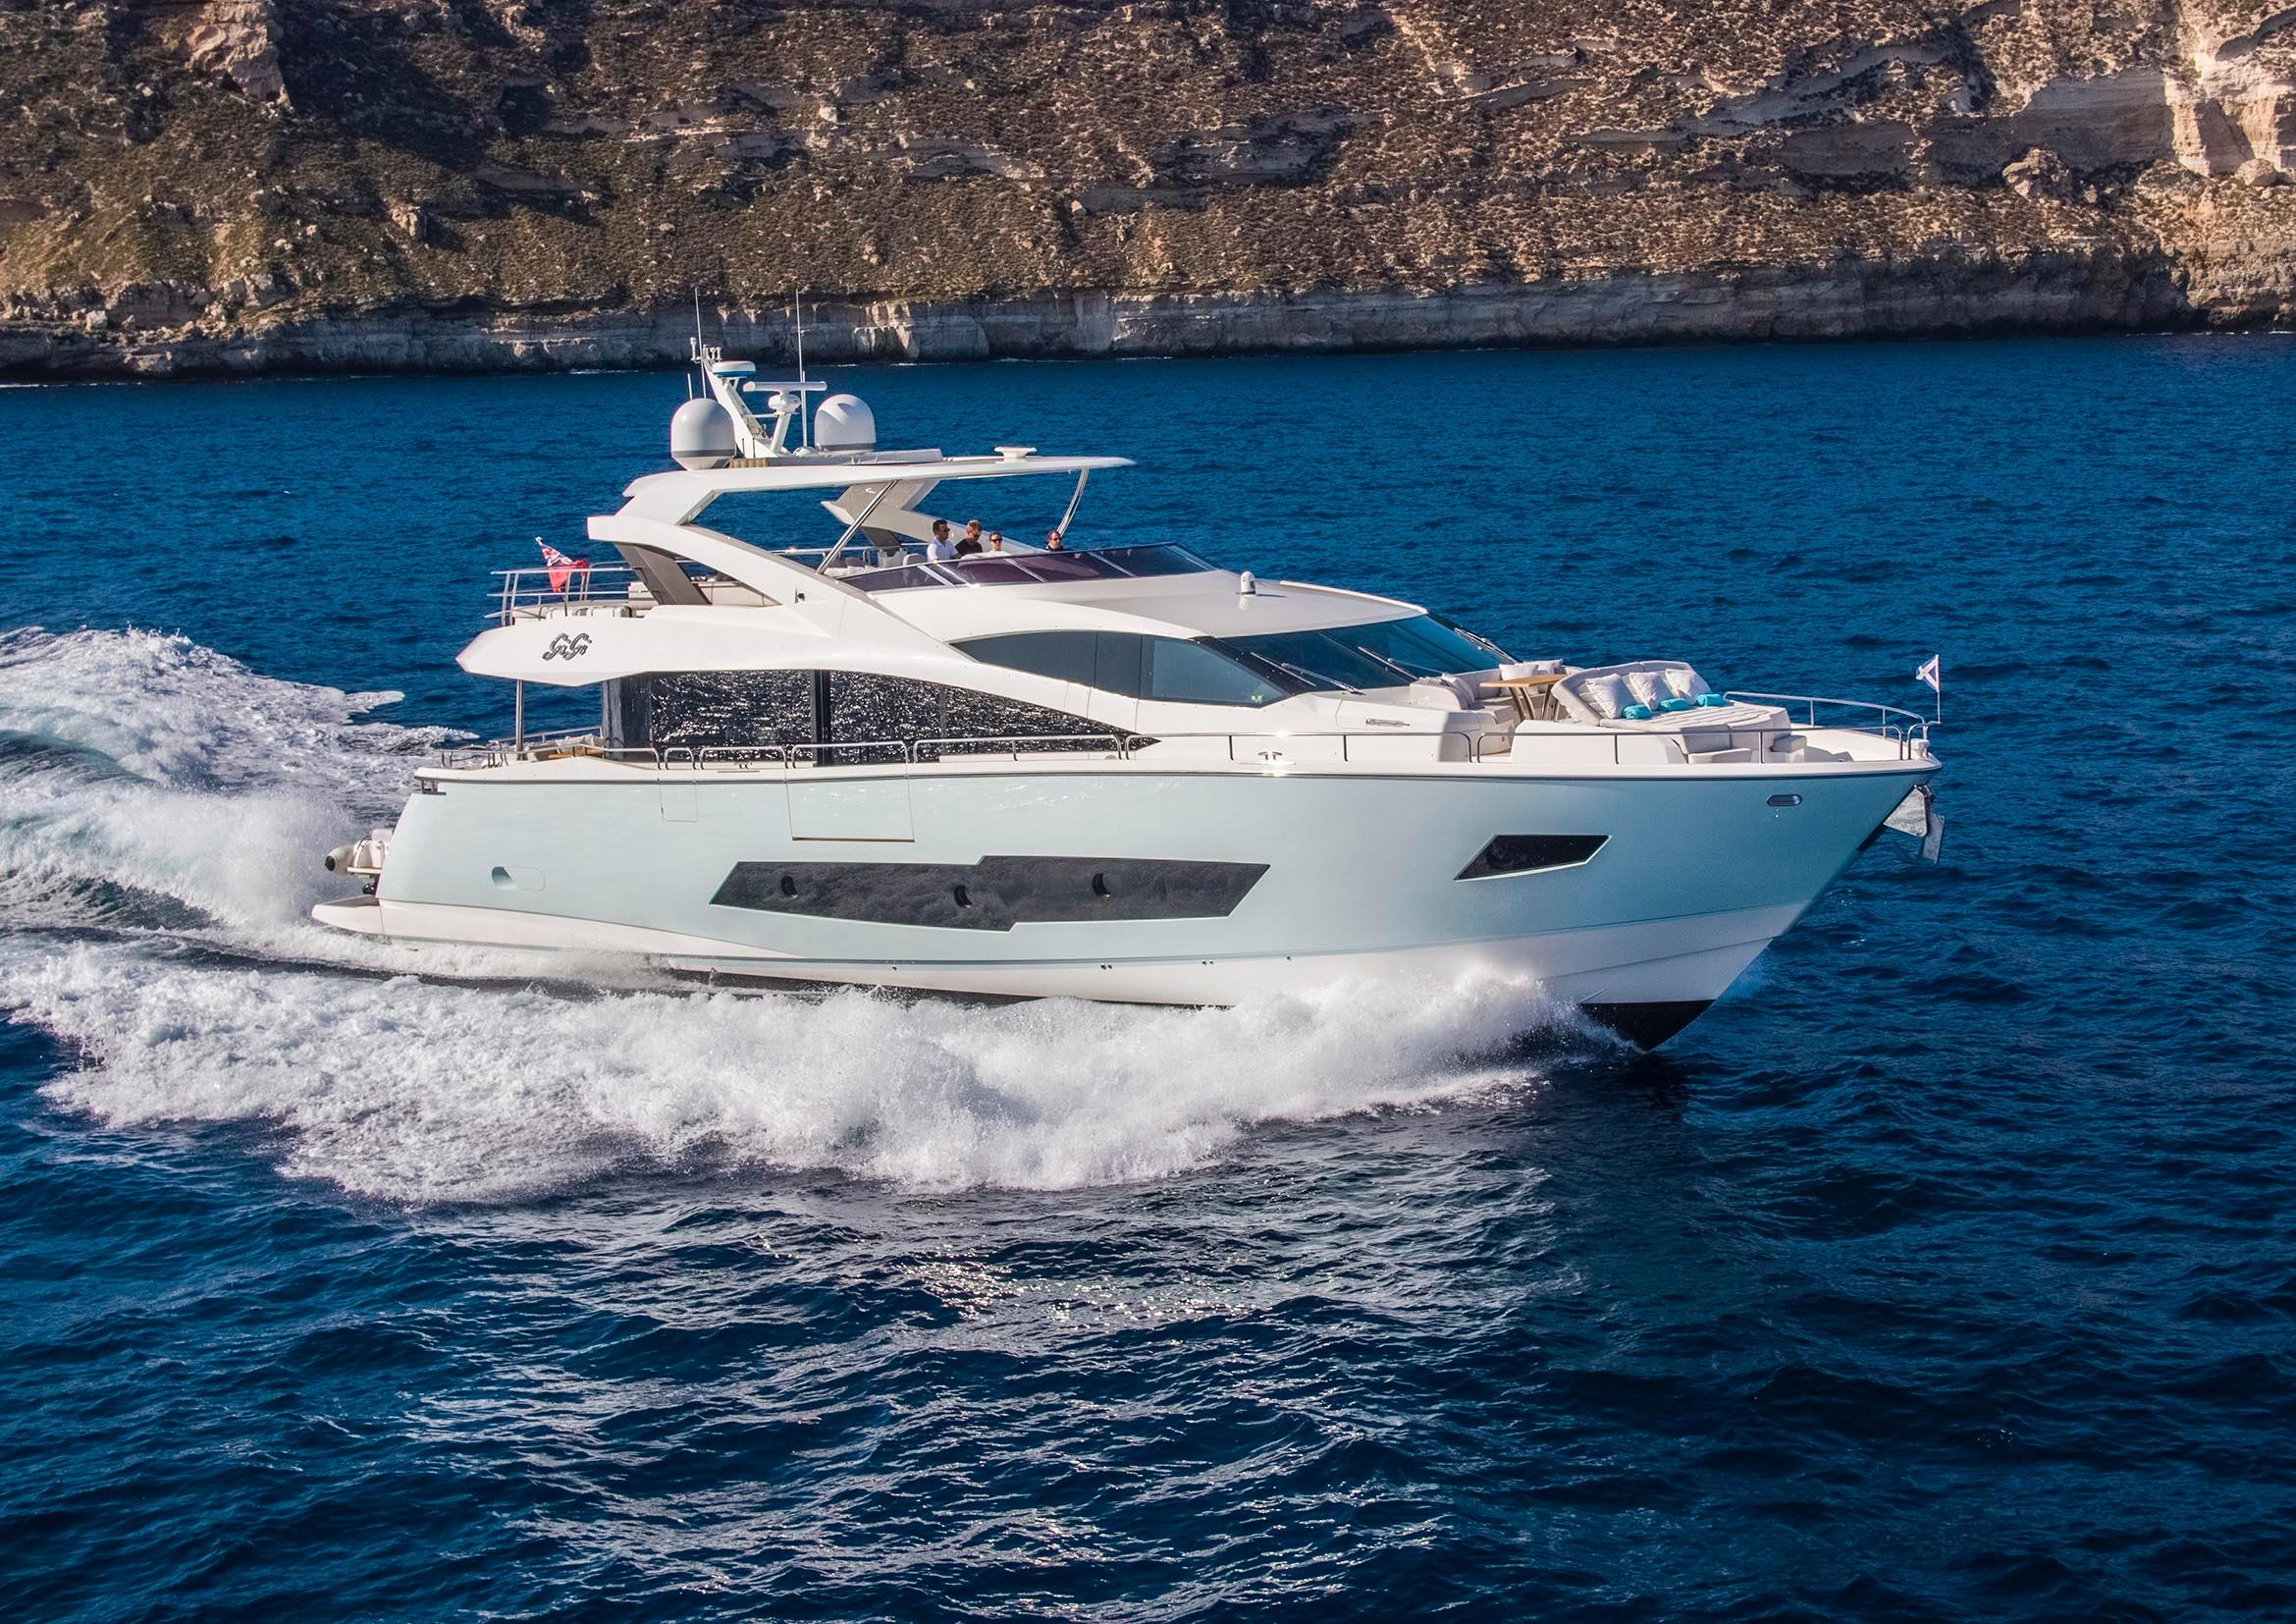 Edelstahlkorb Rund 2015 Sunseeker 86 Yacht Power Boat For Sale Yachtworld